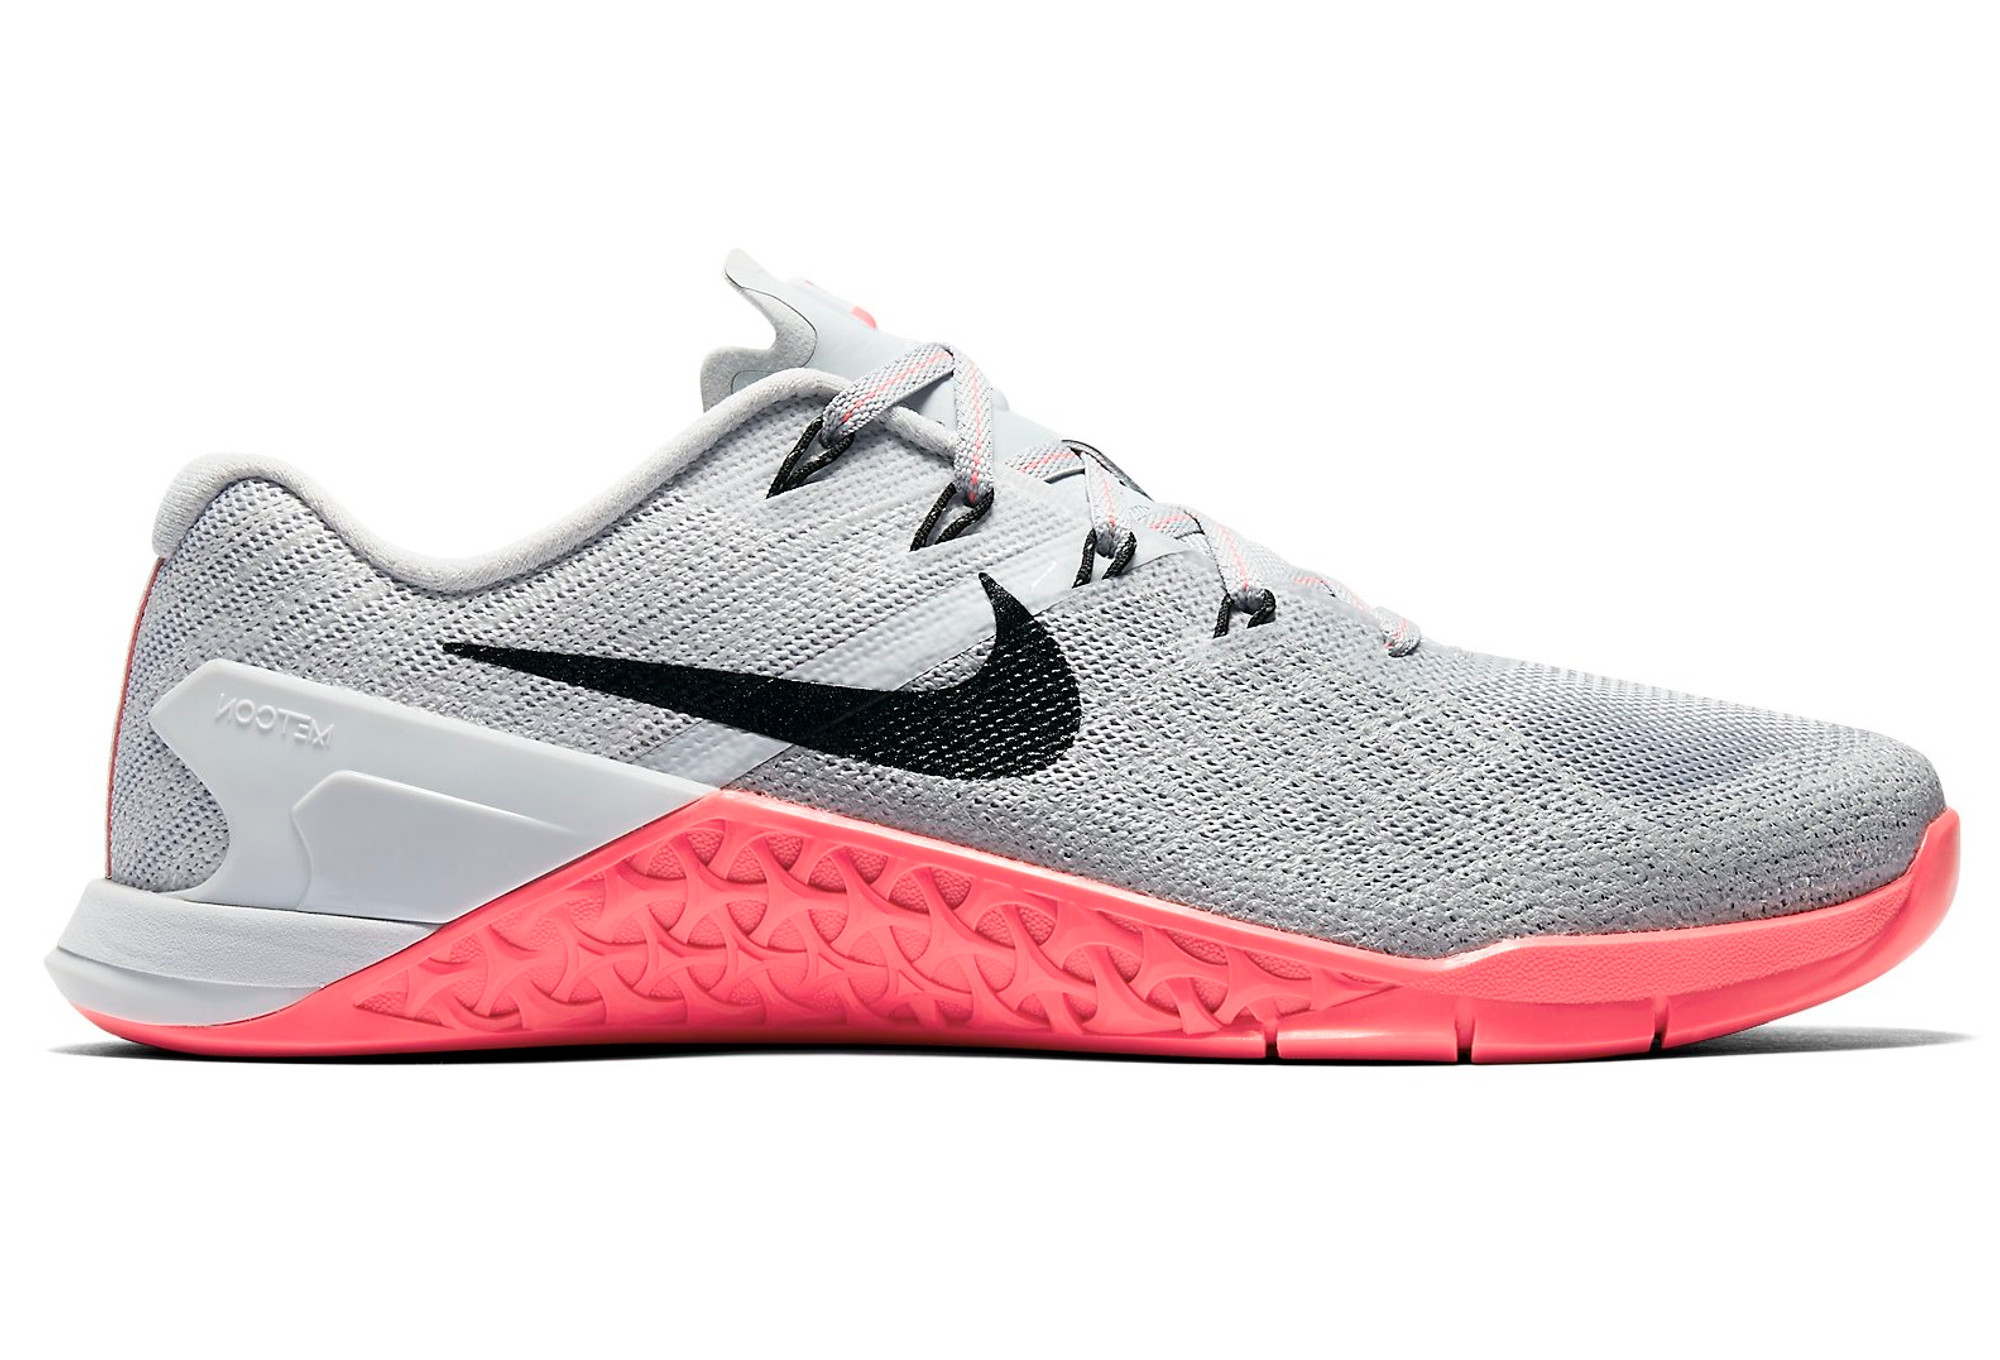 chaussures de cross training femme nike metcon 3 gris rose